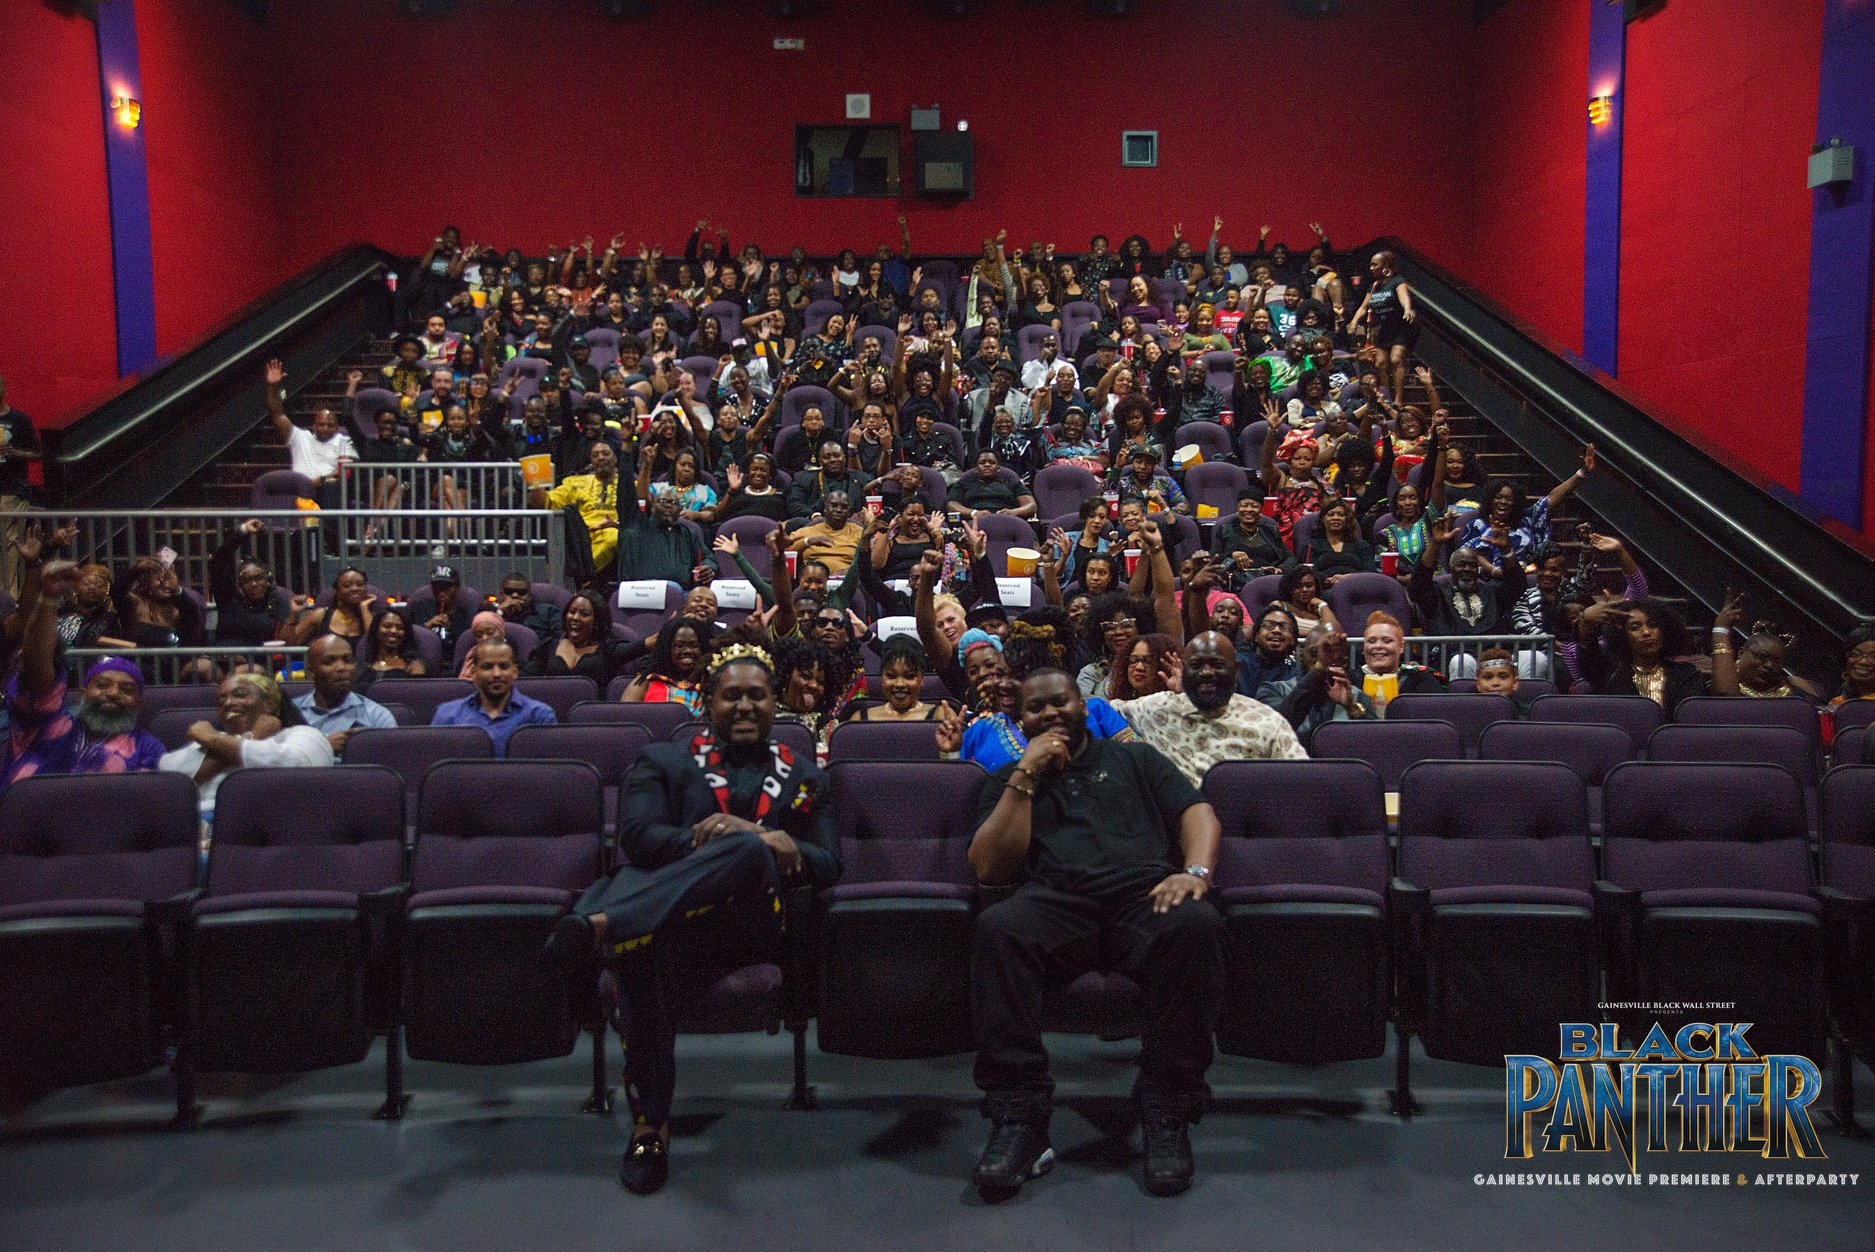 Black Panther Movie Private Screening by Gainesville Black Wall Street